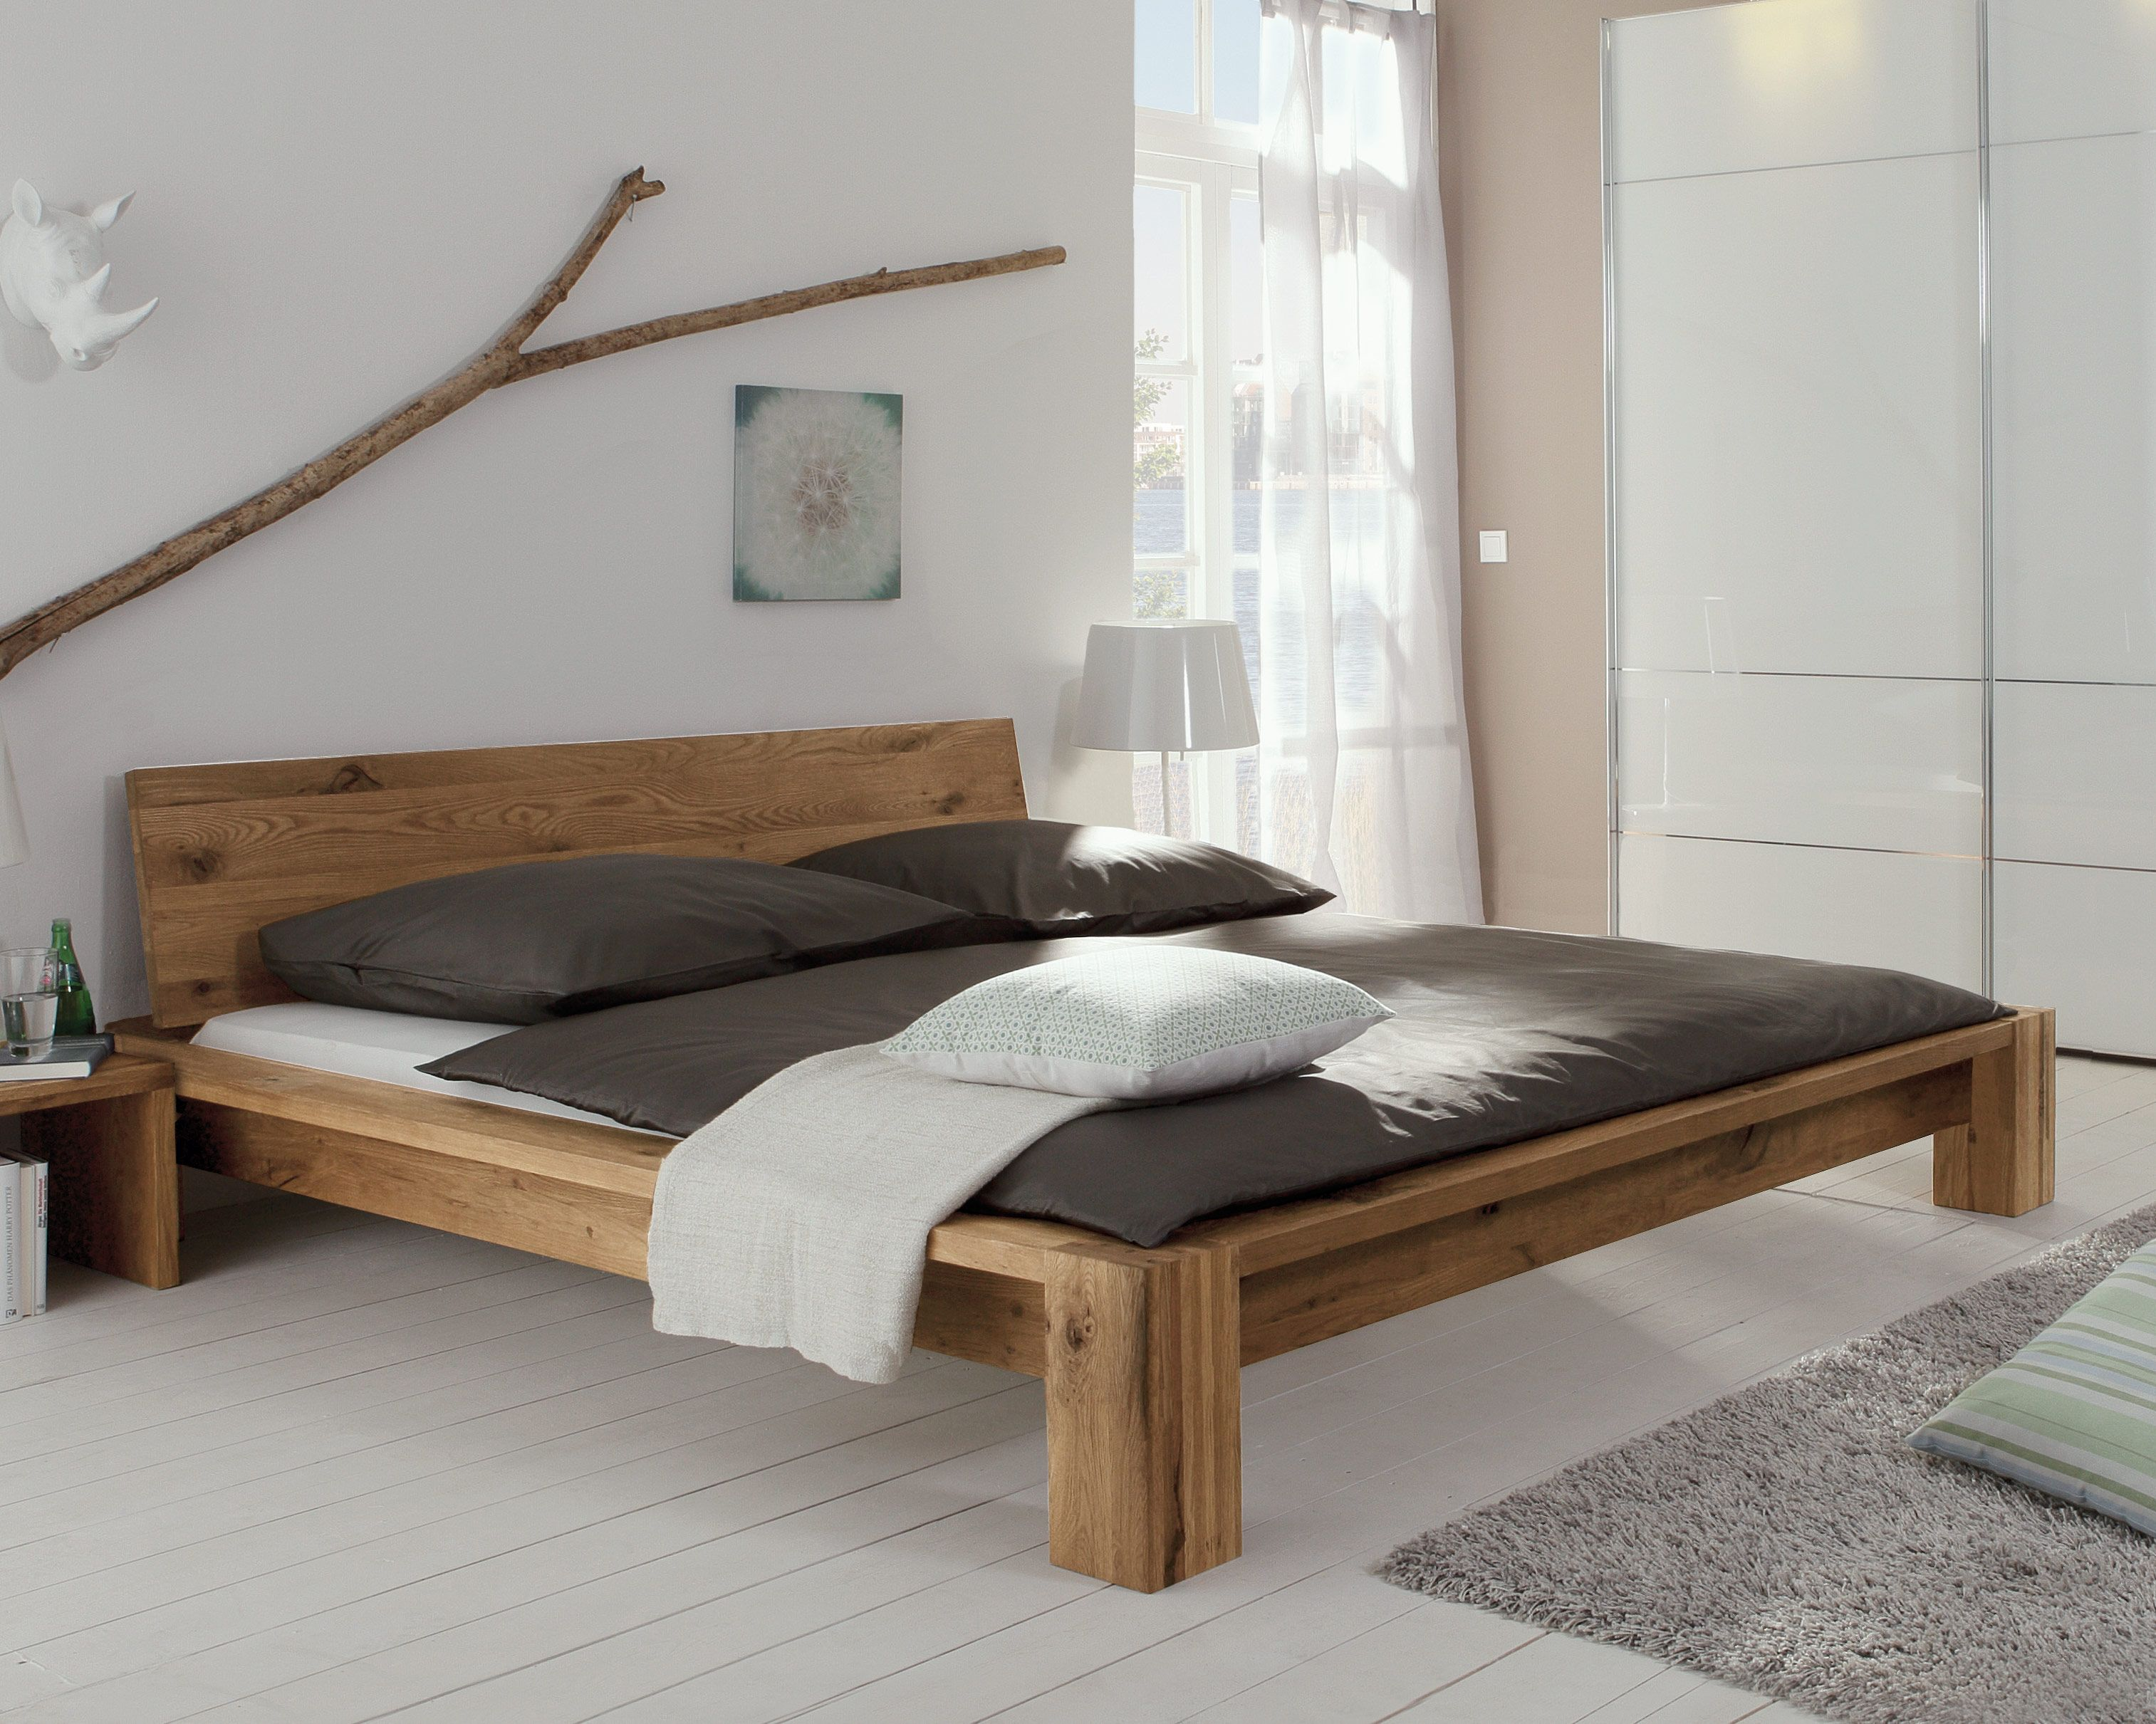 bett perugia massivholz welt pinterest bett schlafzimmer und bett holz. Black Bedroom Furniture Sets. Home Design Ideas